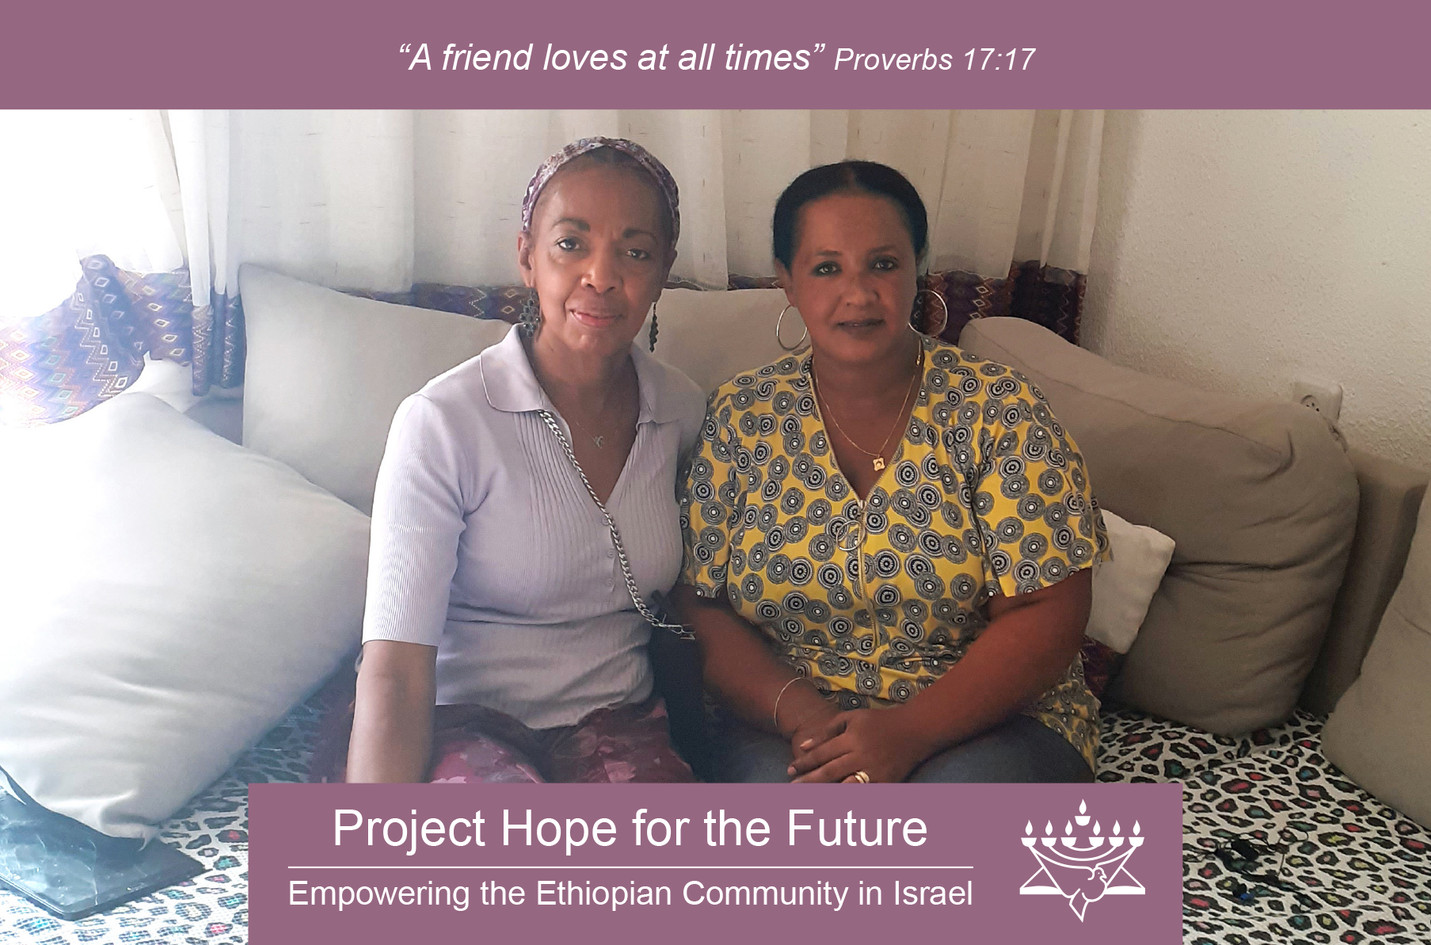 CFI Project Hope for the Future.jpg